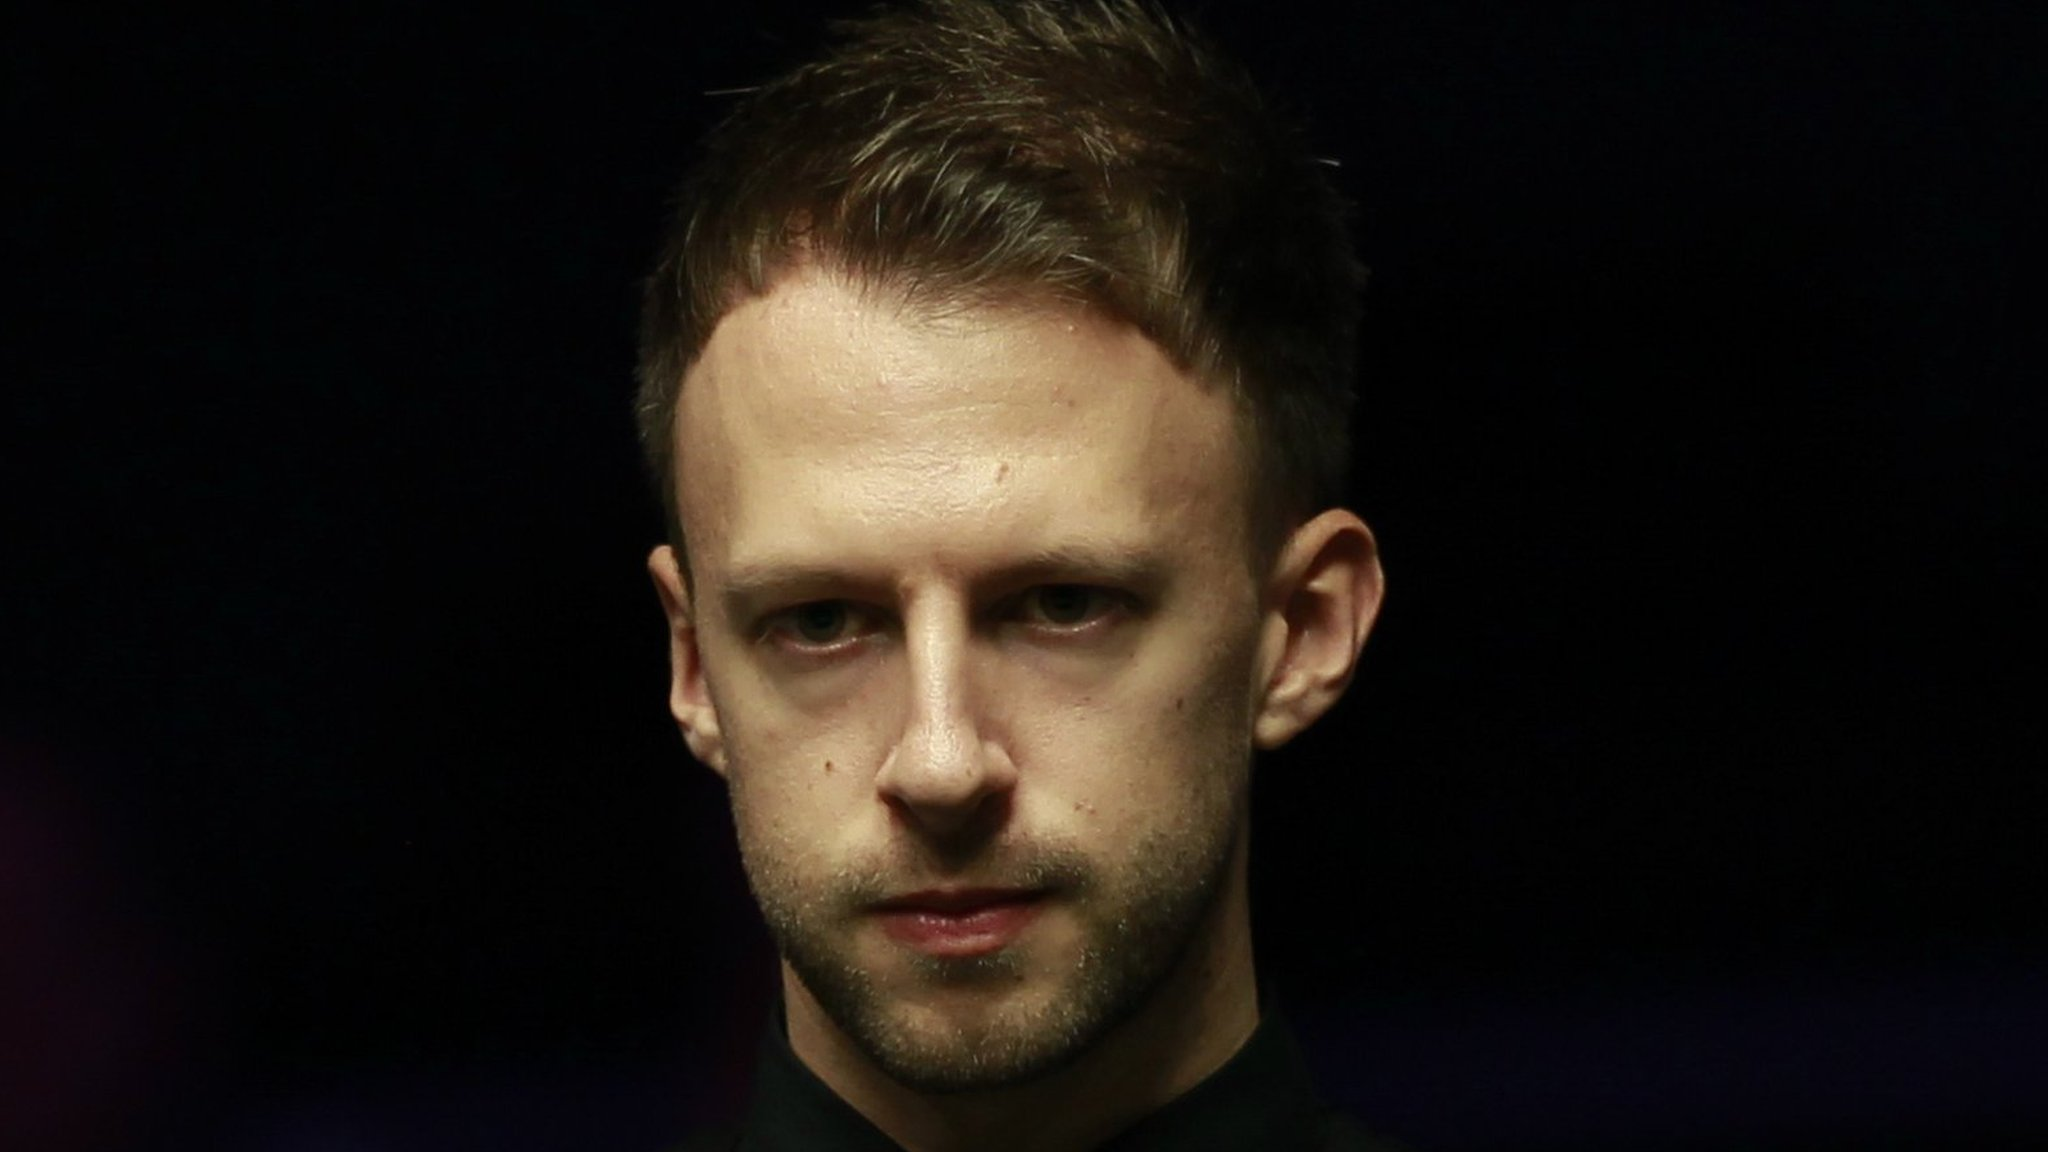 Northern Ireland Open: Judd Trump beats Ronnie O'Sullivan 9-7 in final